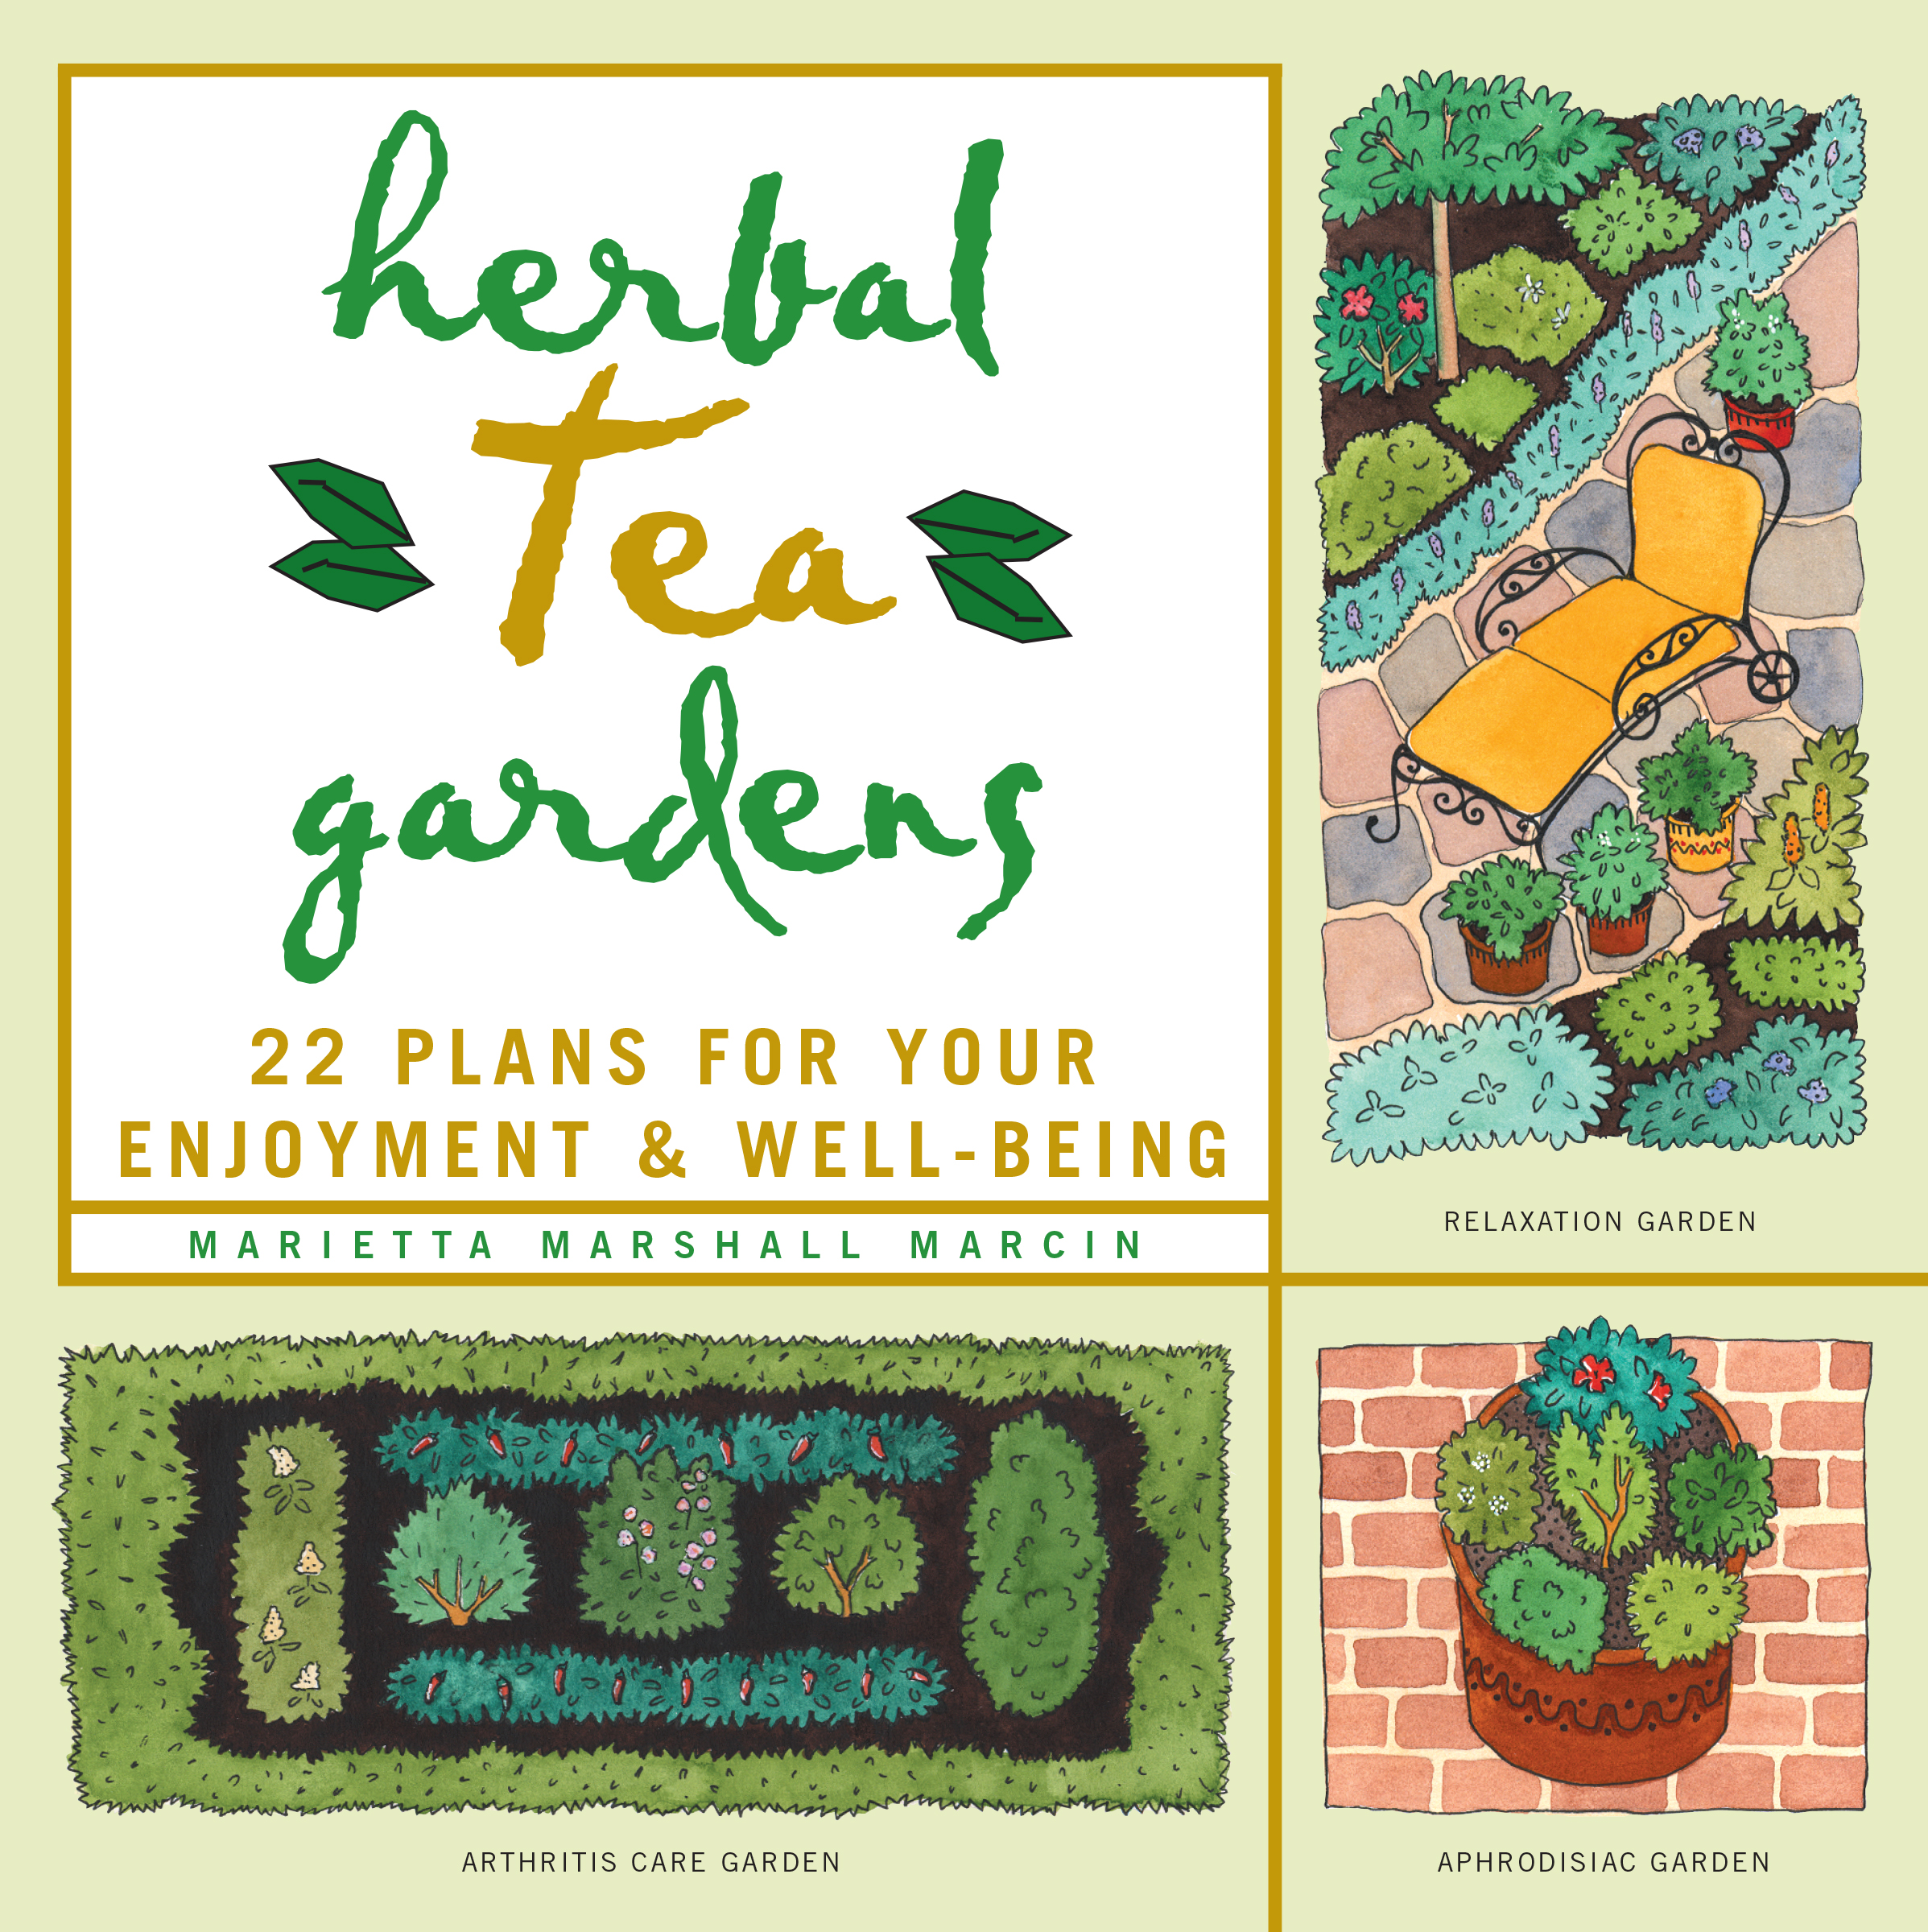 Herbal Tea Gardens 22 Plans for Your Enjoyment & Well-Being - Marietta Marshall Marcin